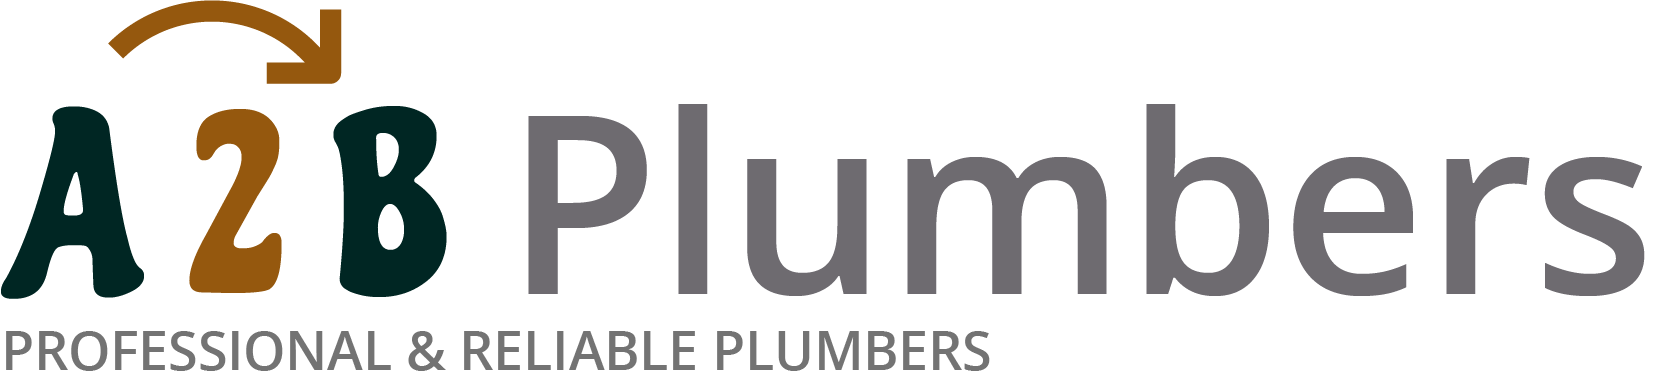 If you need a boiler installed, a radiator repaired or a leaking tap fixed, call us now - we provide services for properties in Penge and the local area.